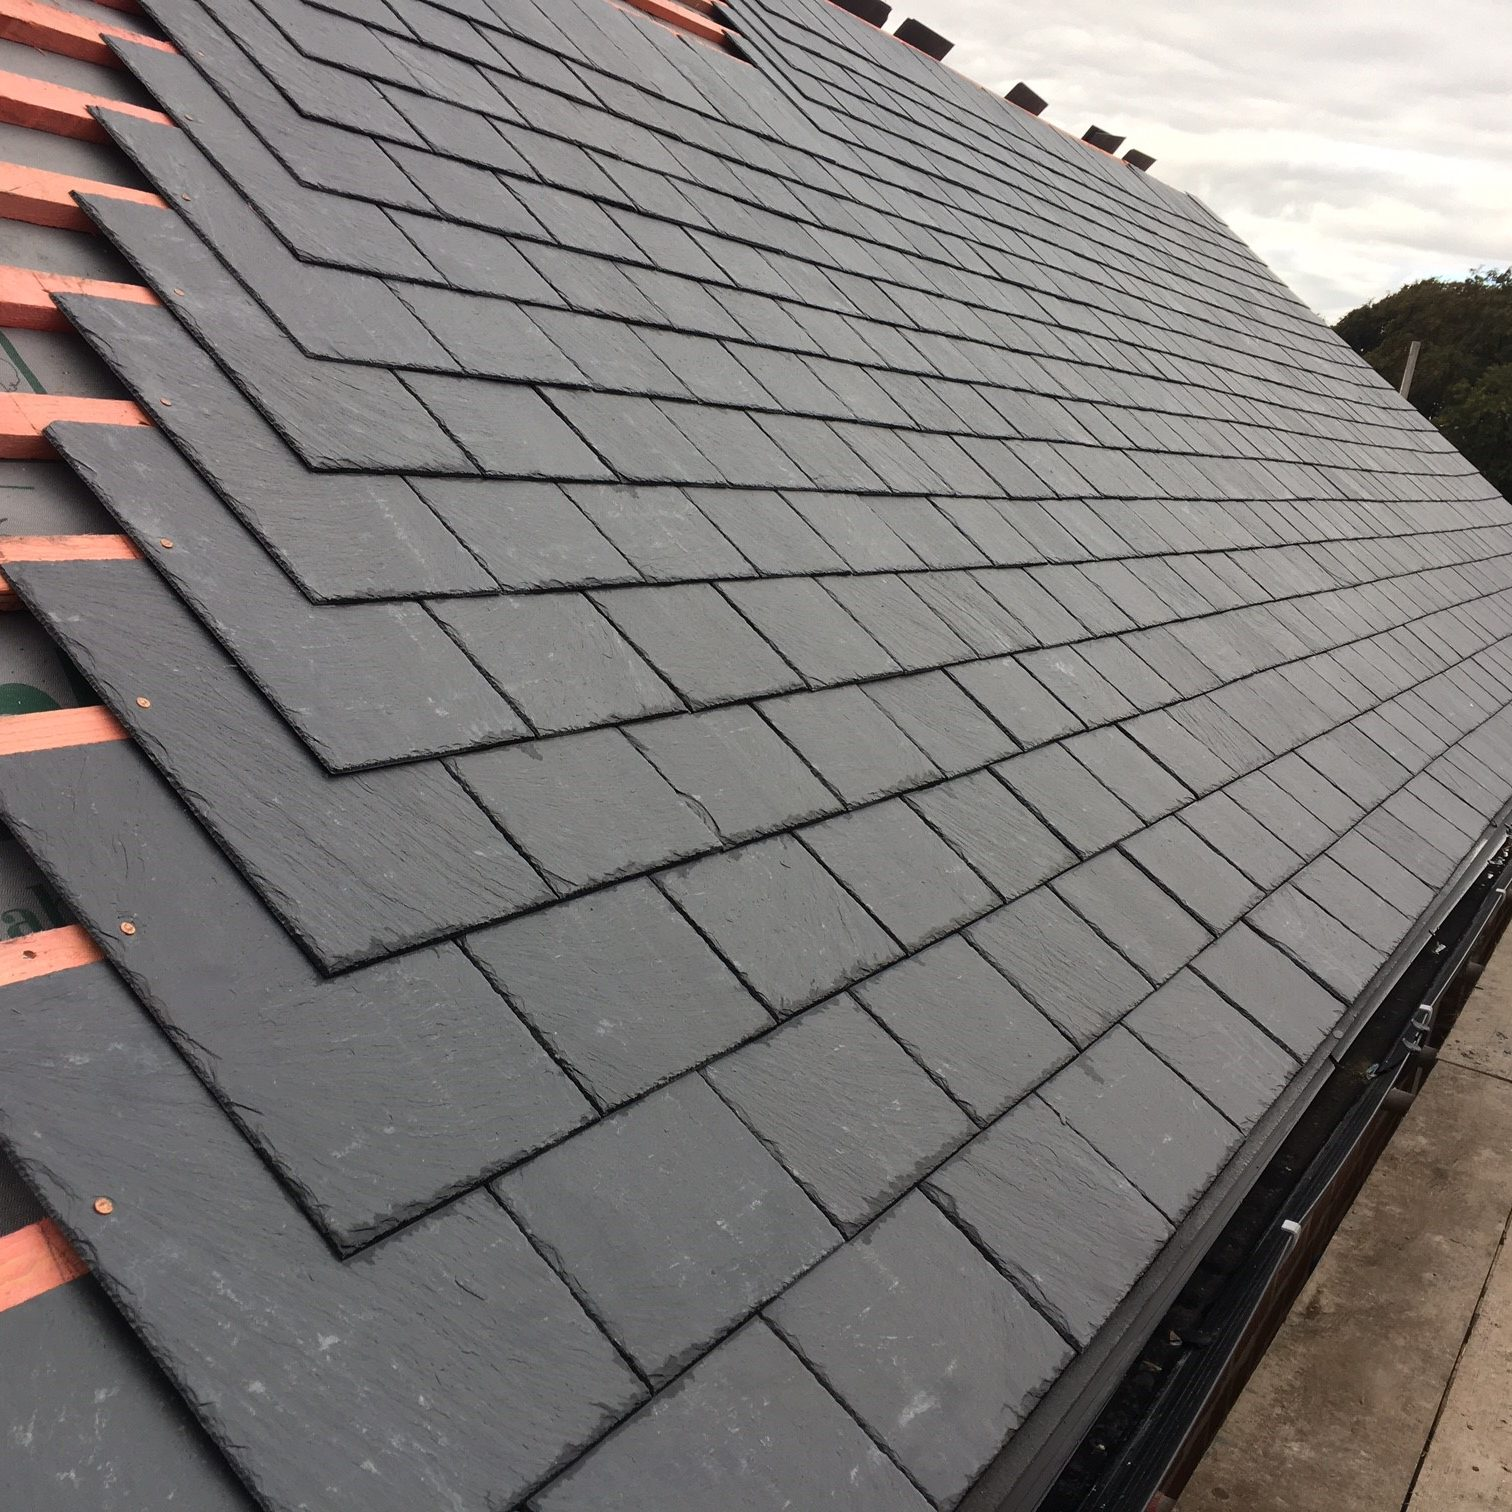 Slate pitched roof installation